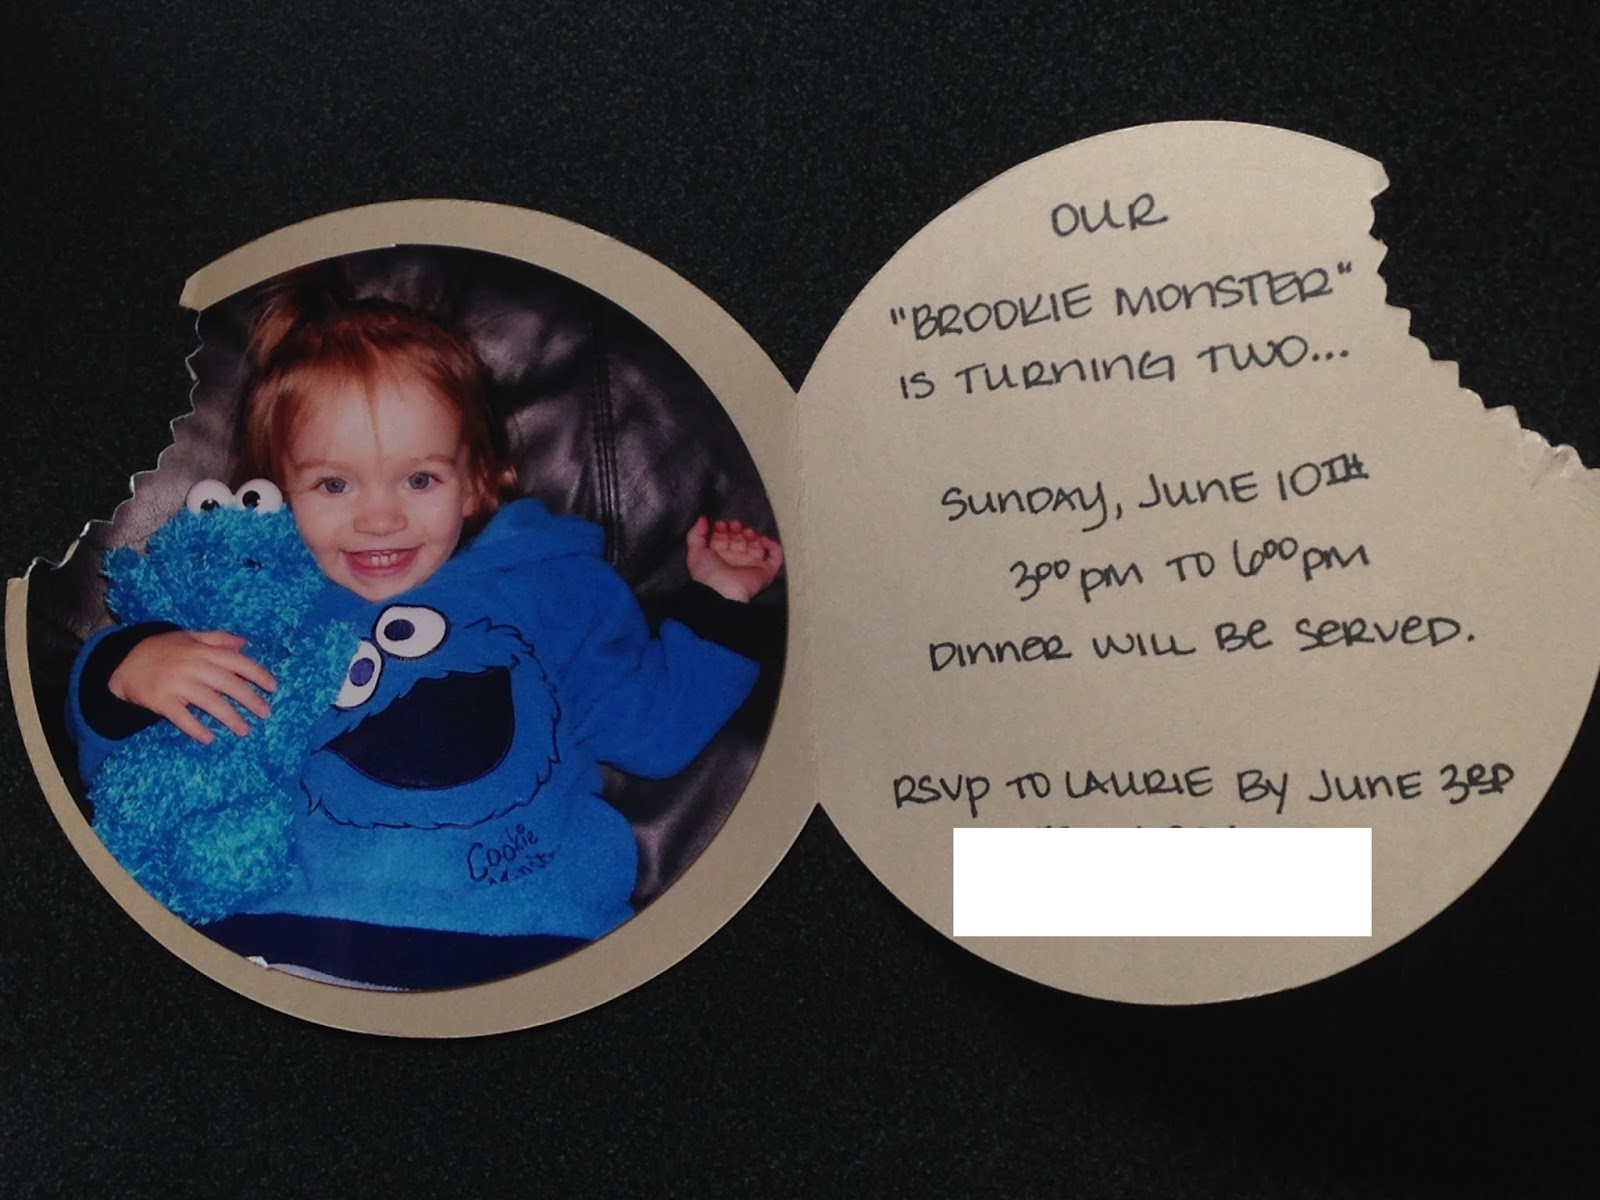 Kapers Cookies and Campfires Birthday Party Invitations Part One